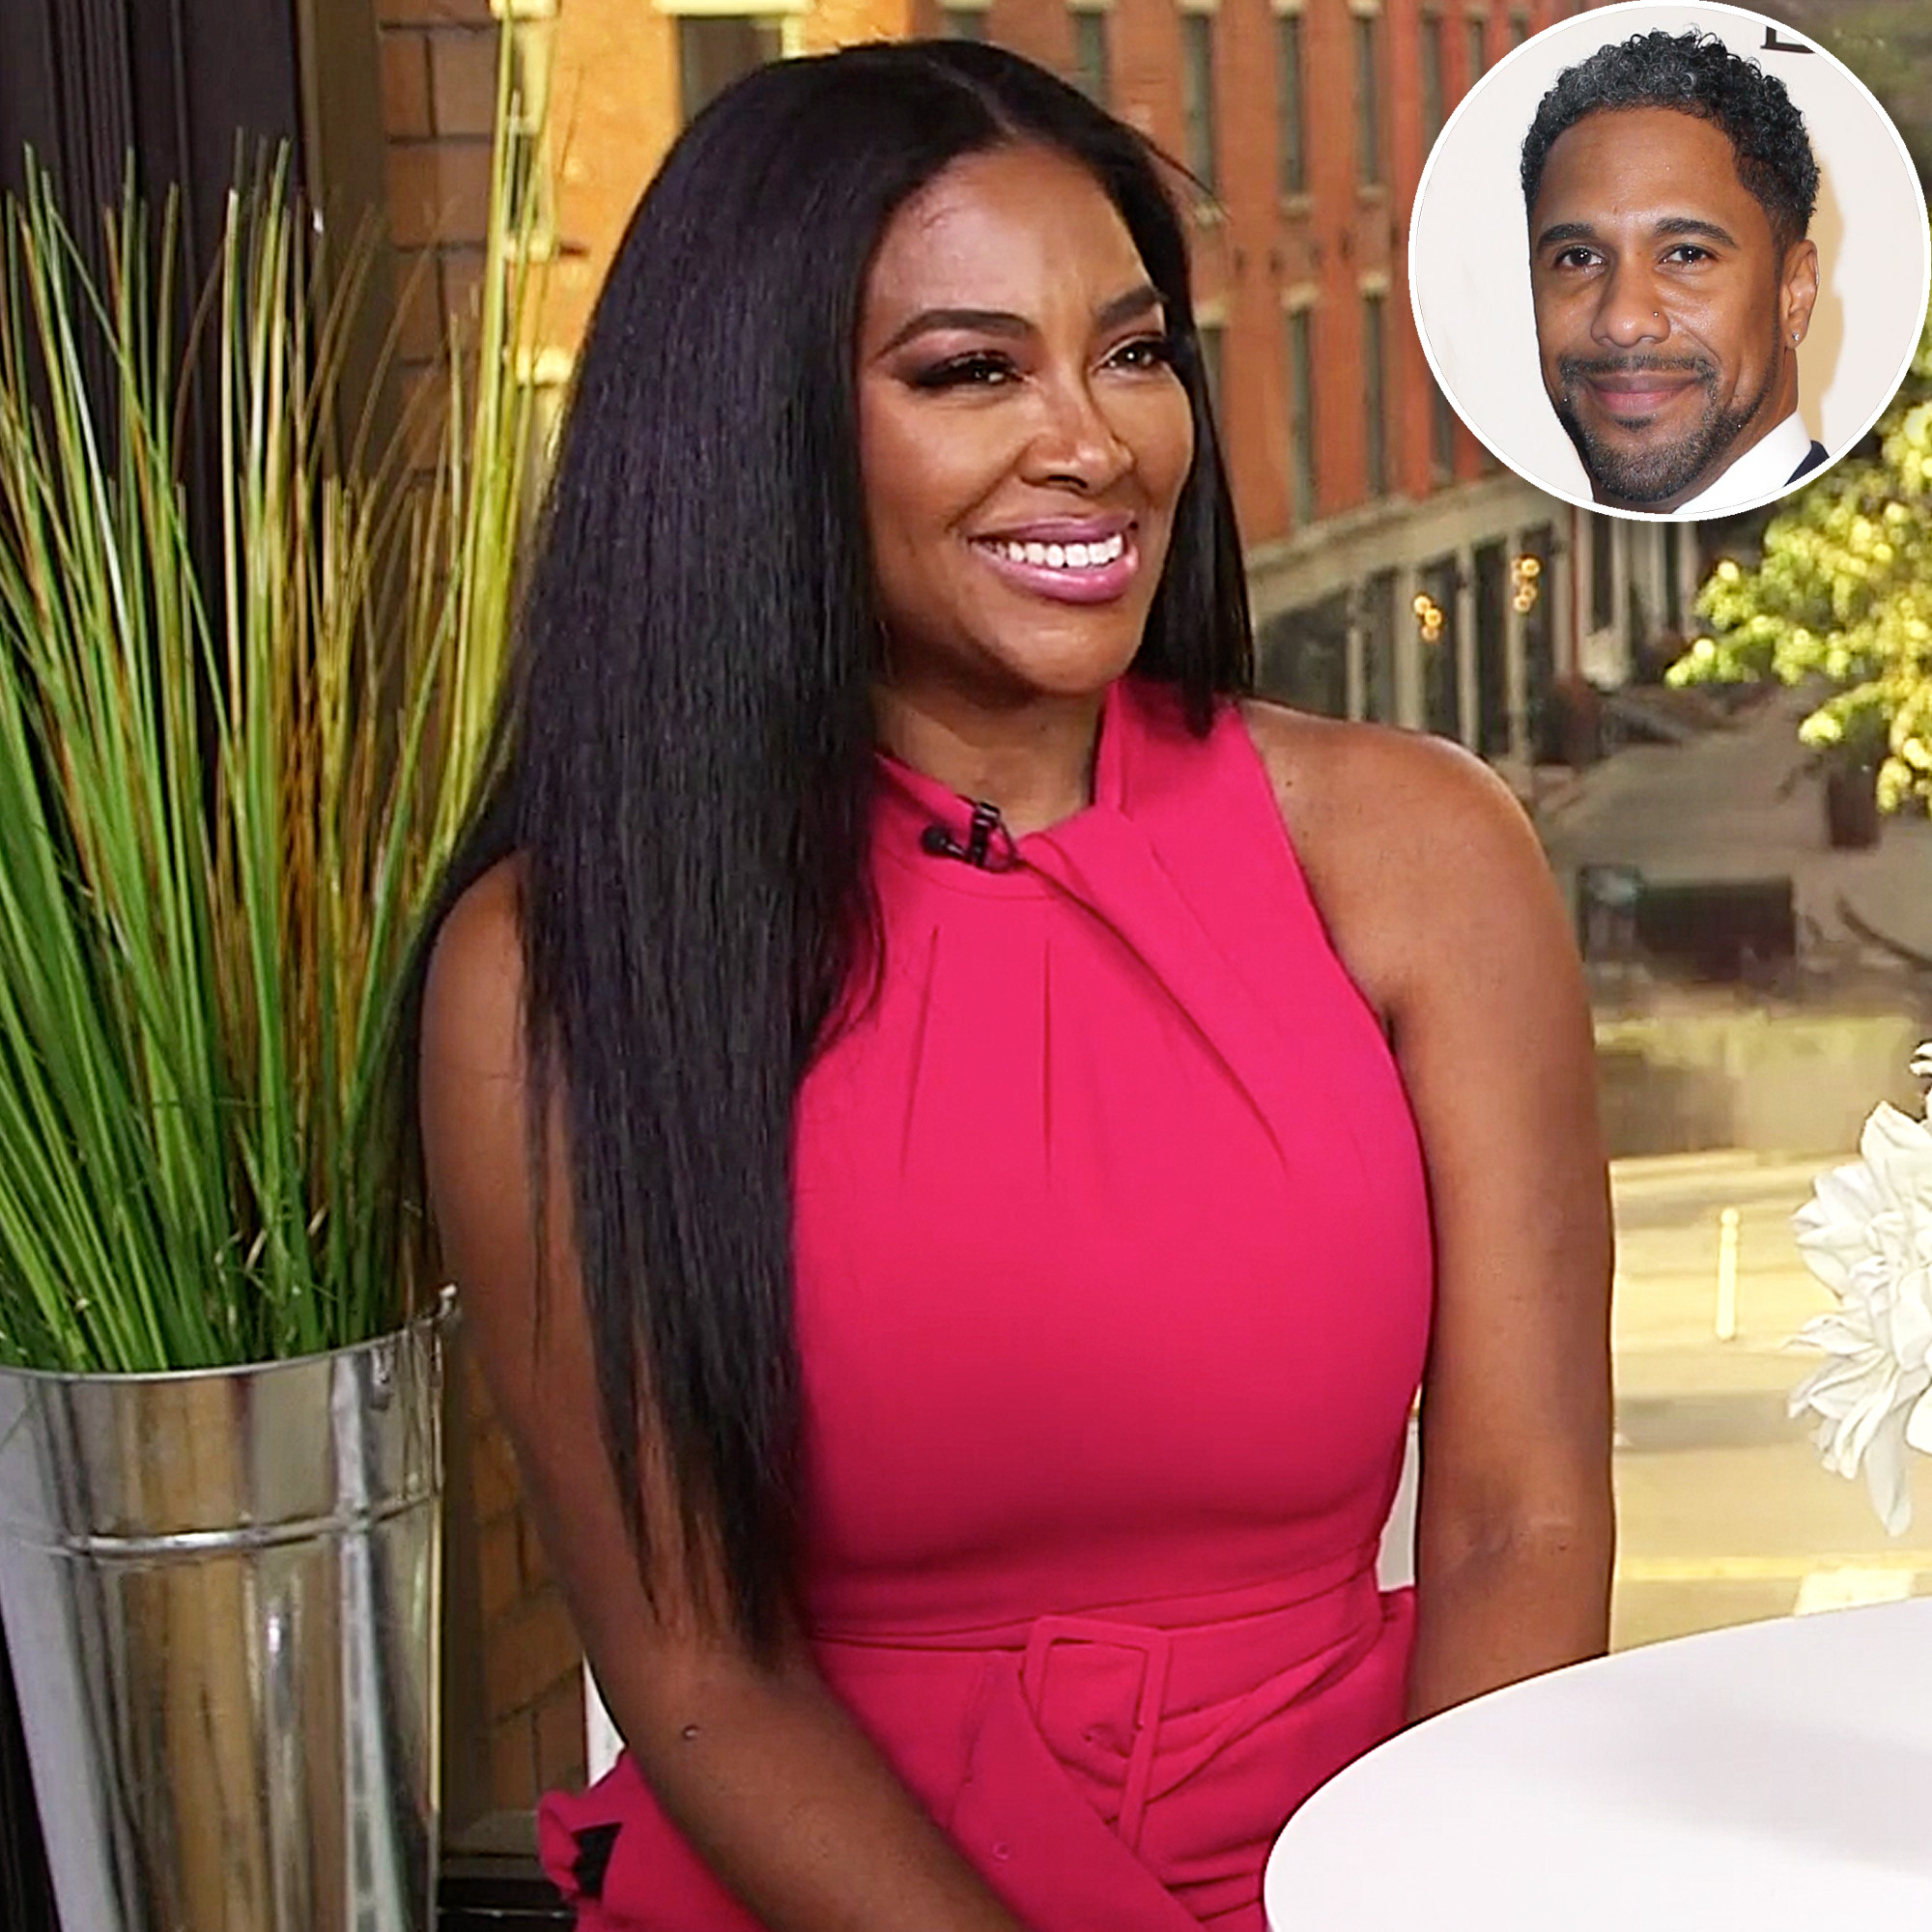 Savage Kenya Moore Shares Some Steamy Clips On Social Media That Have Fans Saying That She Deserves Someone Better Than Marc Daly